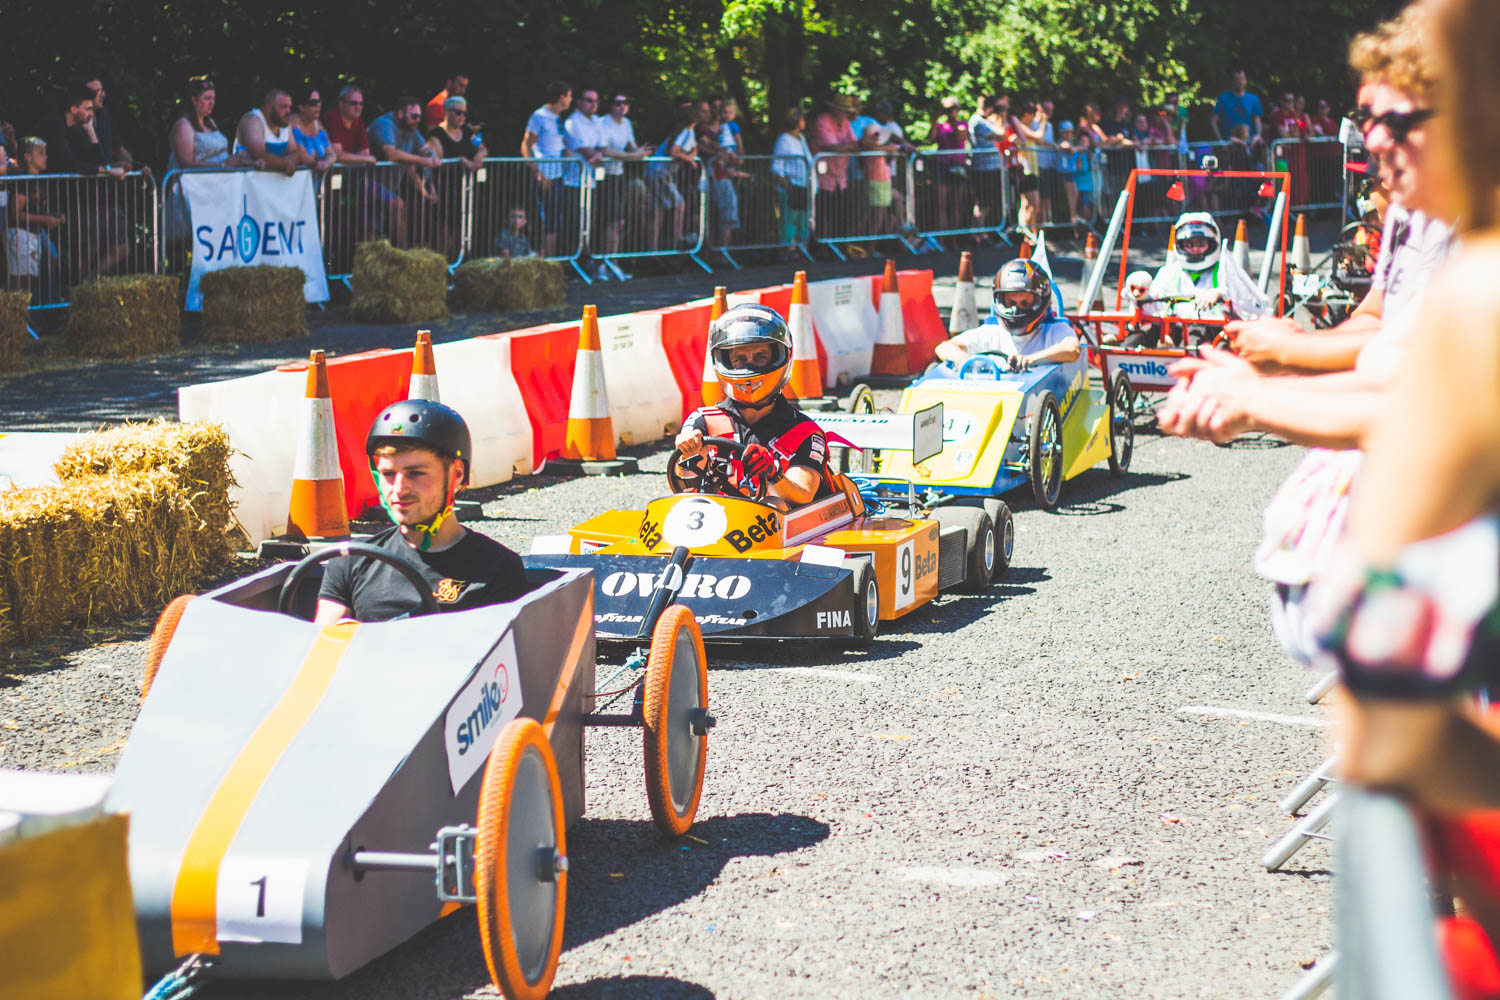 HUMBER BRIDGE SOAPBOX DERBY 2019